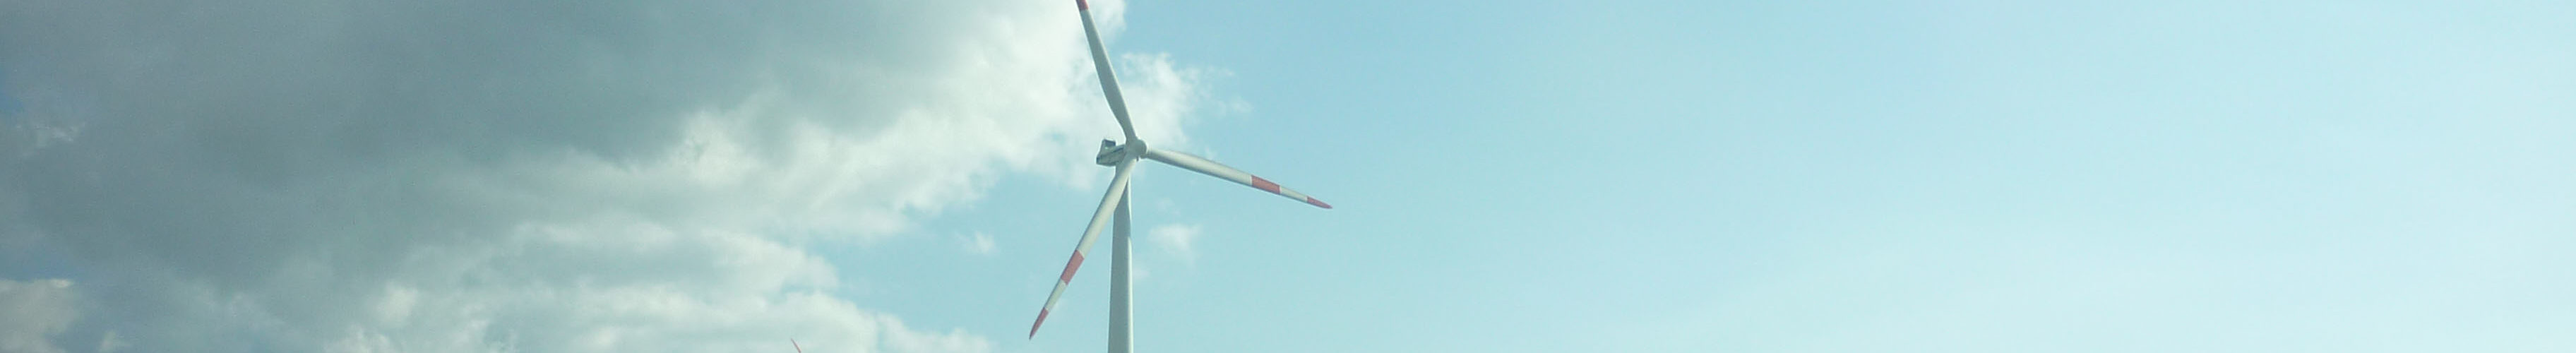 wind-turbines-a8-ulm